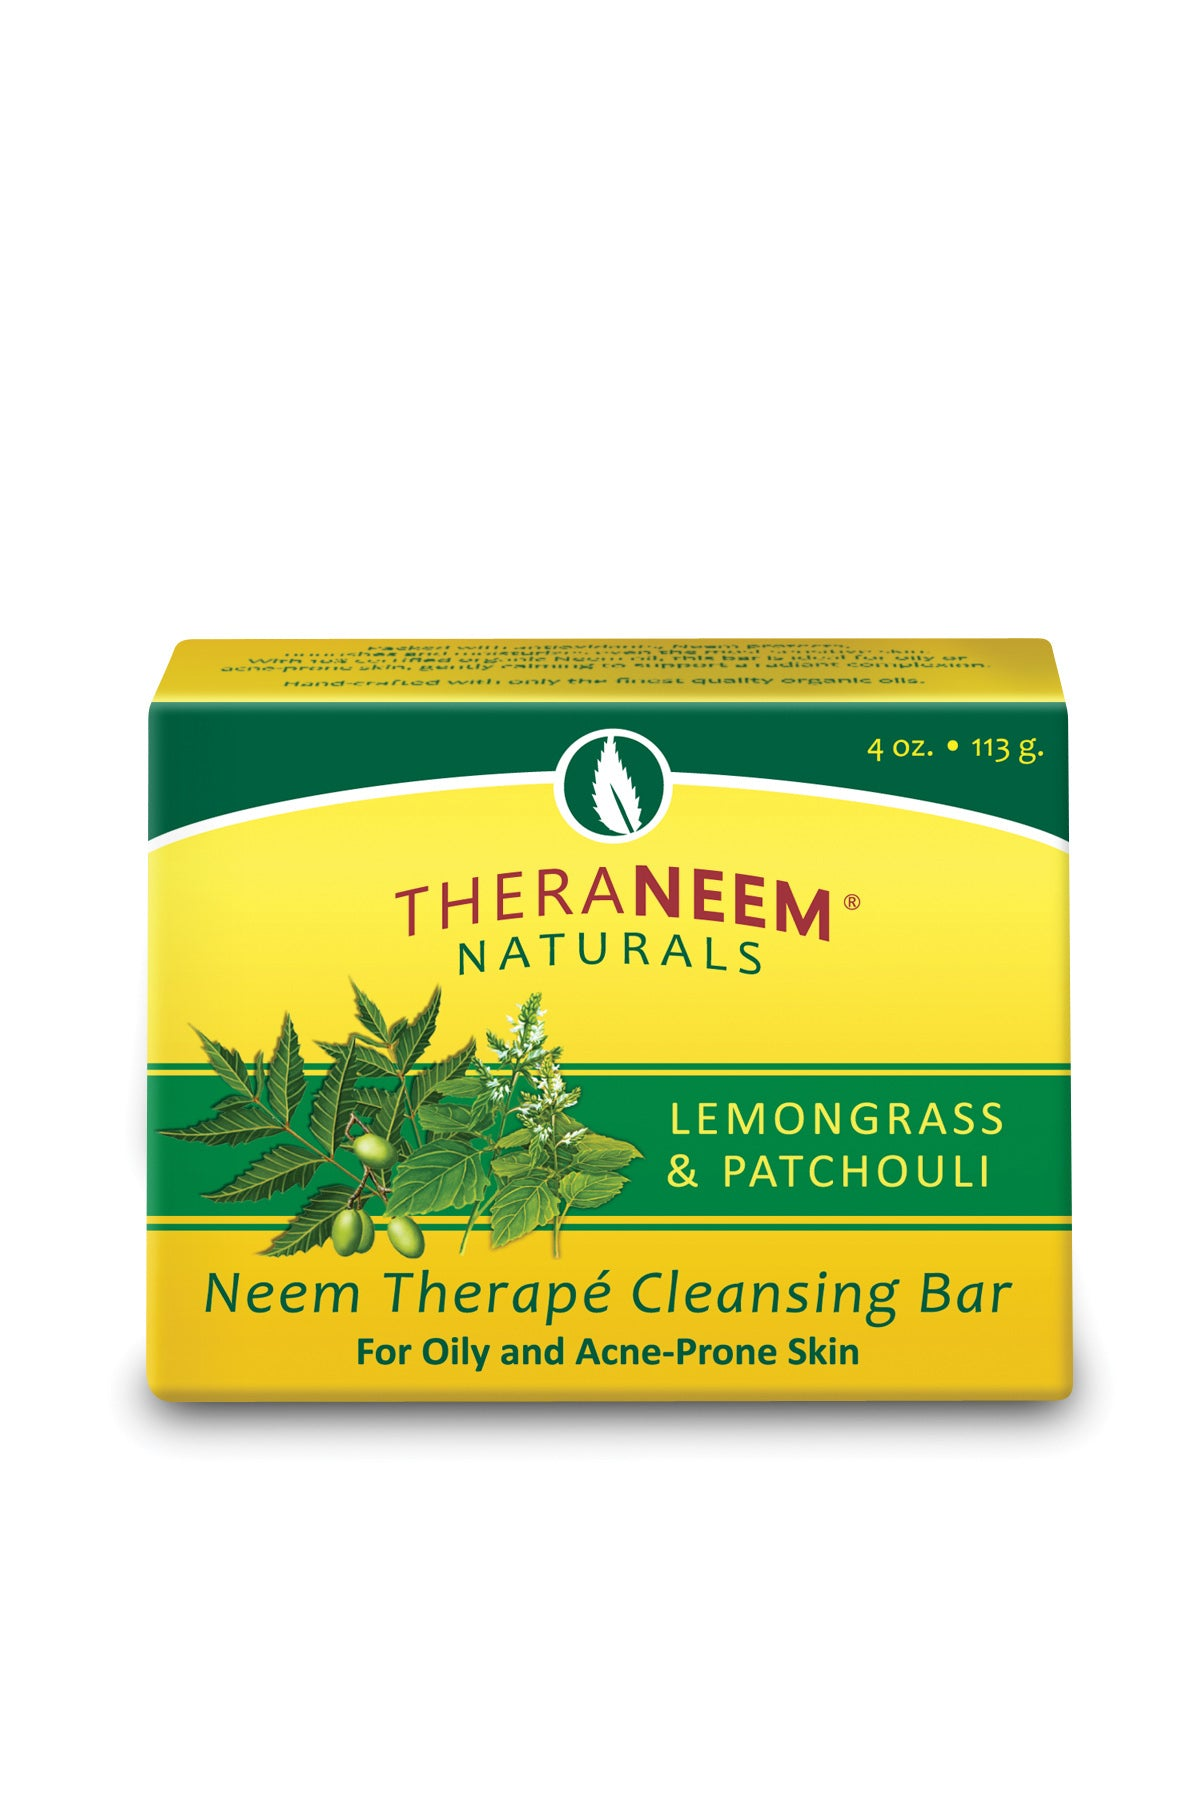 Lemongrass Patchouli & Neem Oil Cleansing Bar - Default Title